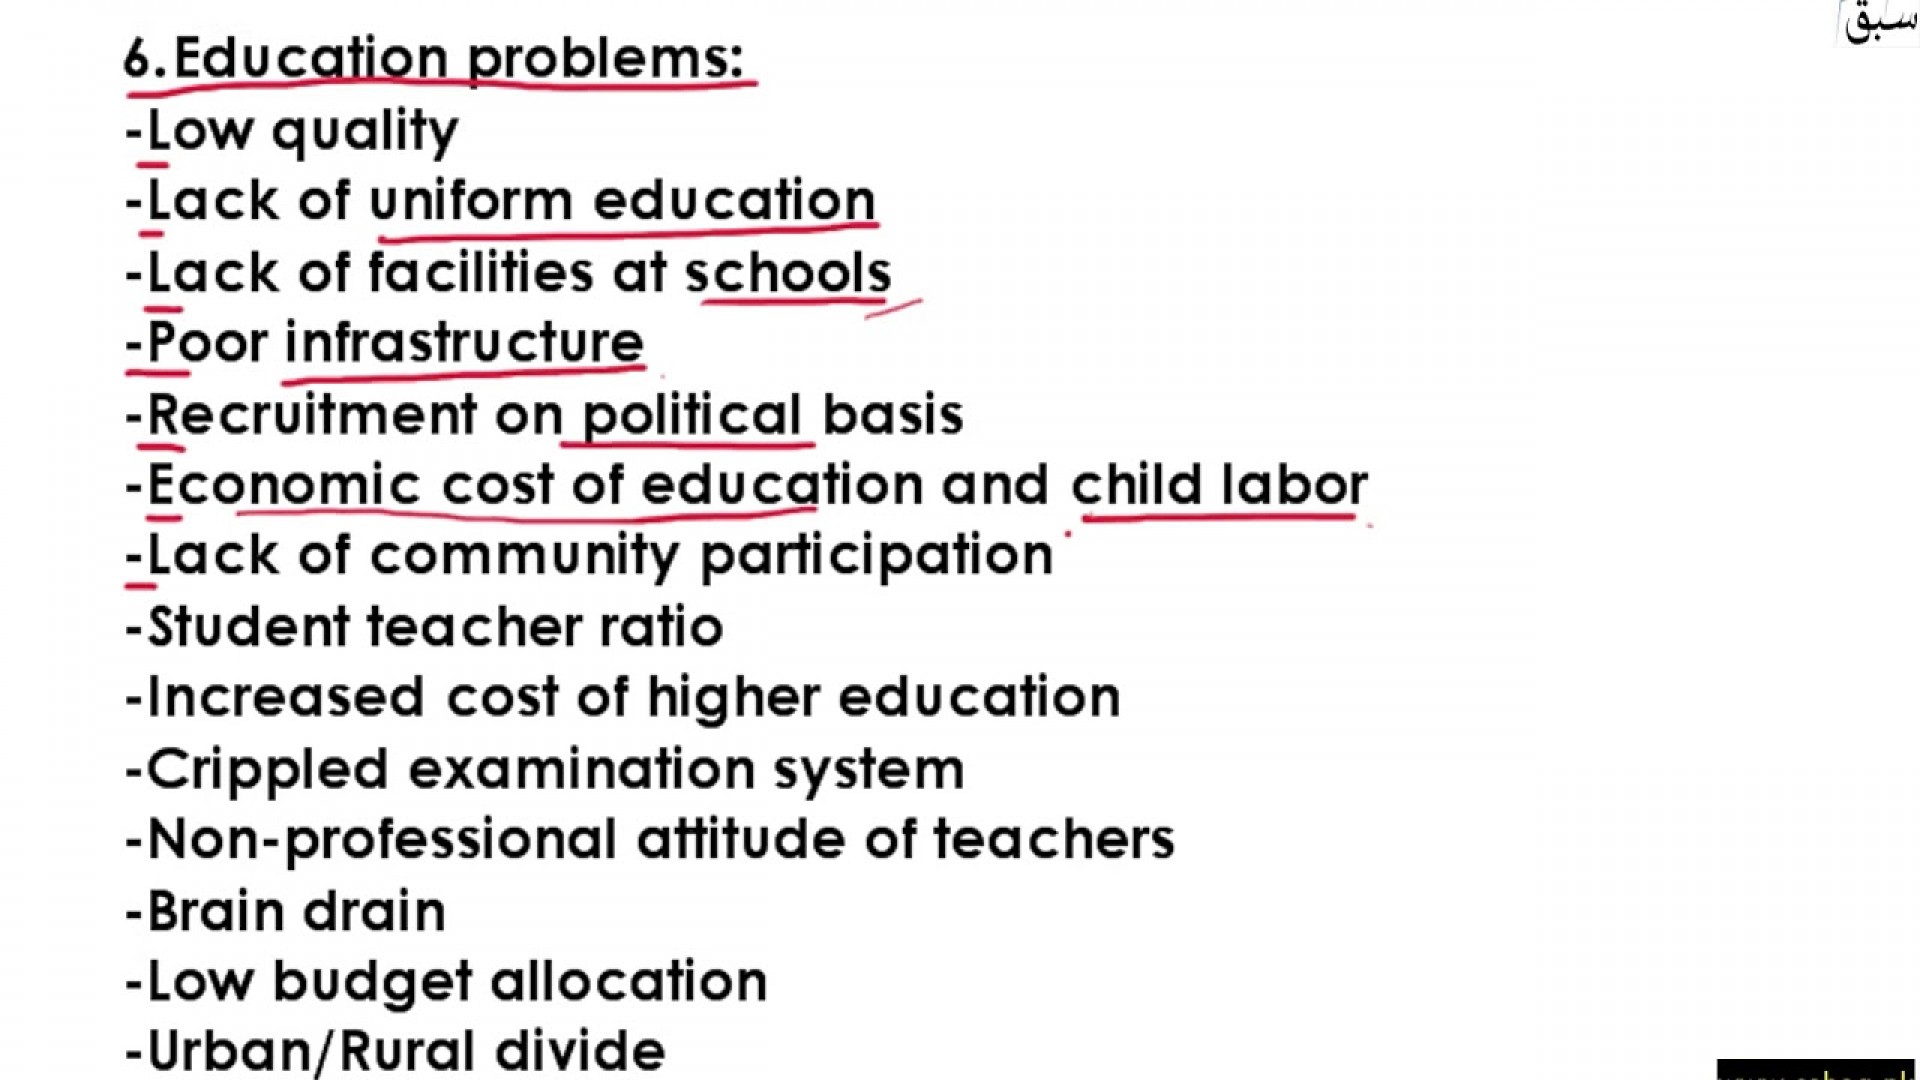 014 Essay On Education System In Pakistan With Outline Research Paper Impressive Our 1920